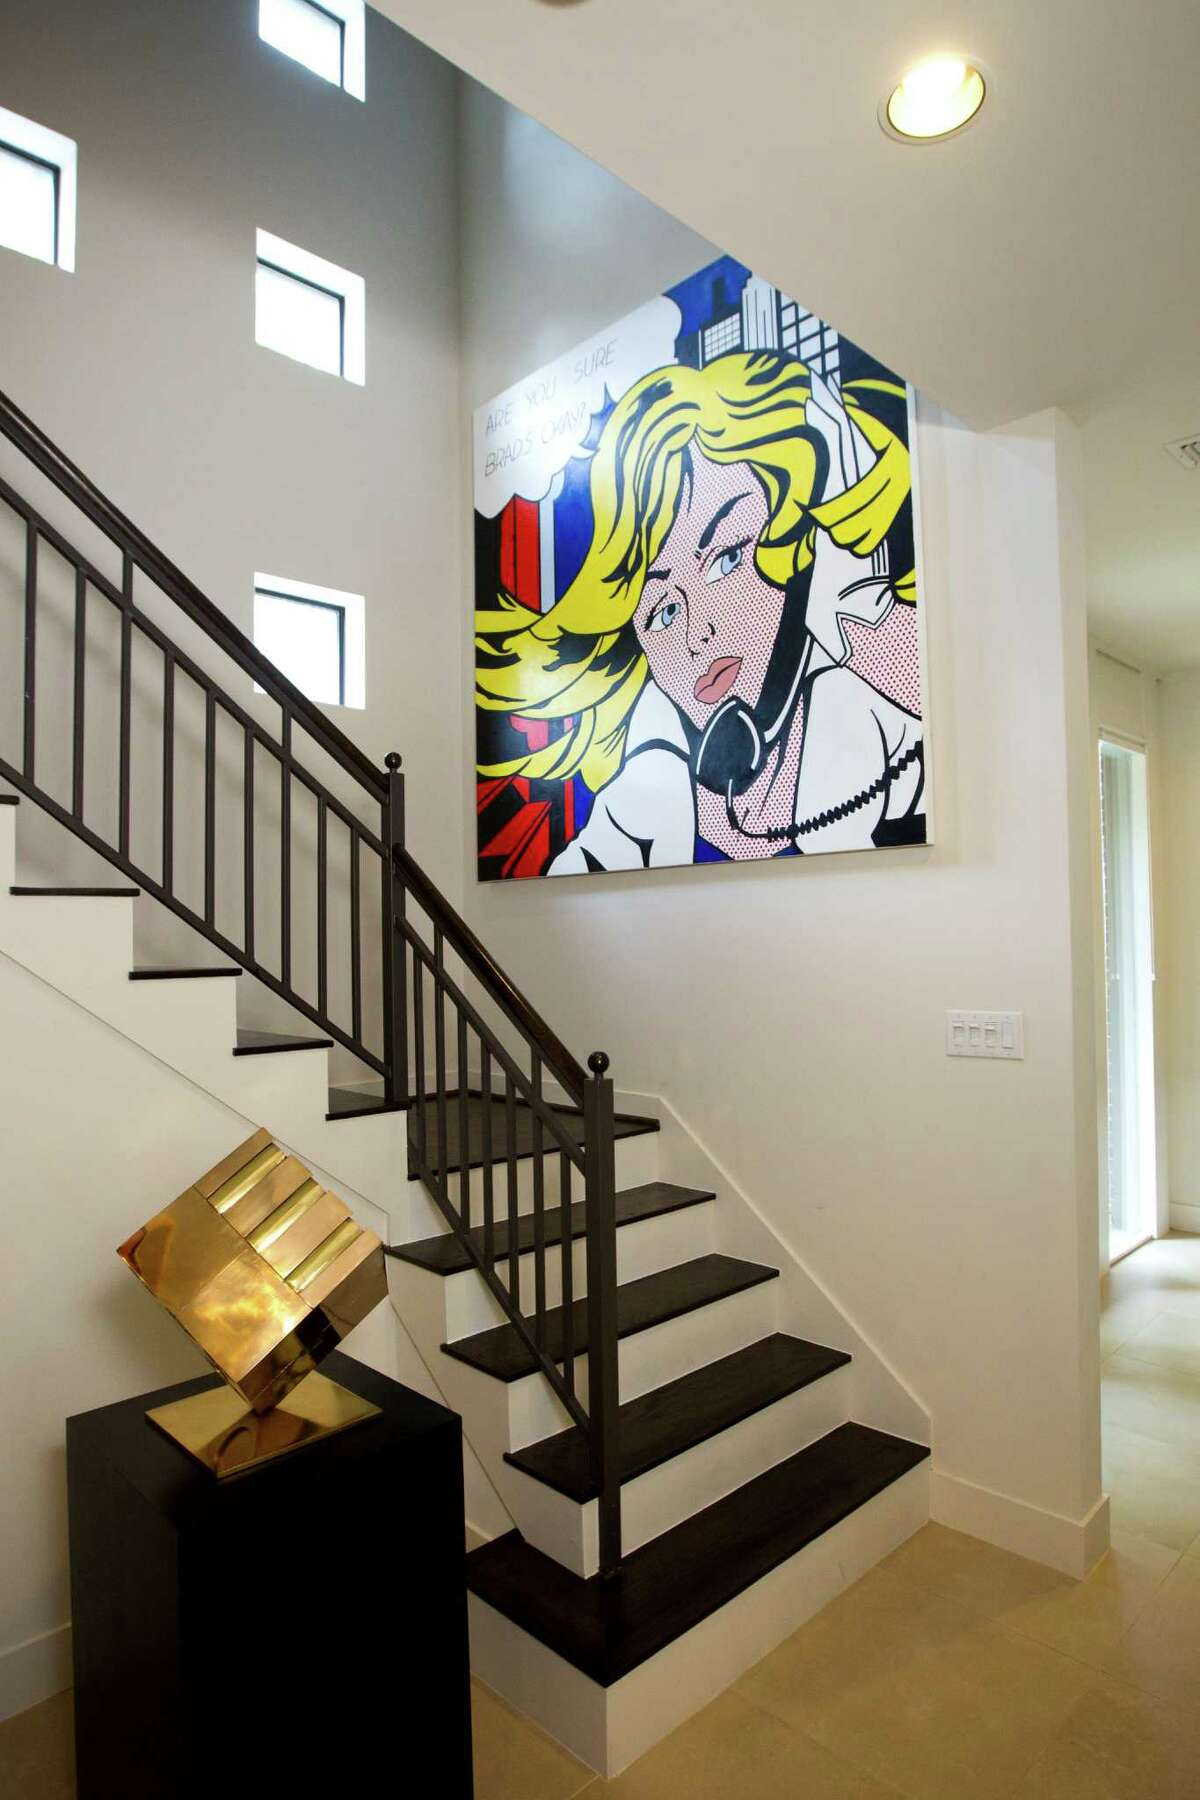 The windows in the stairway show off a Tony Rosenthal sculpture and a reproduction of a Roy Lichtenstein painting.